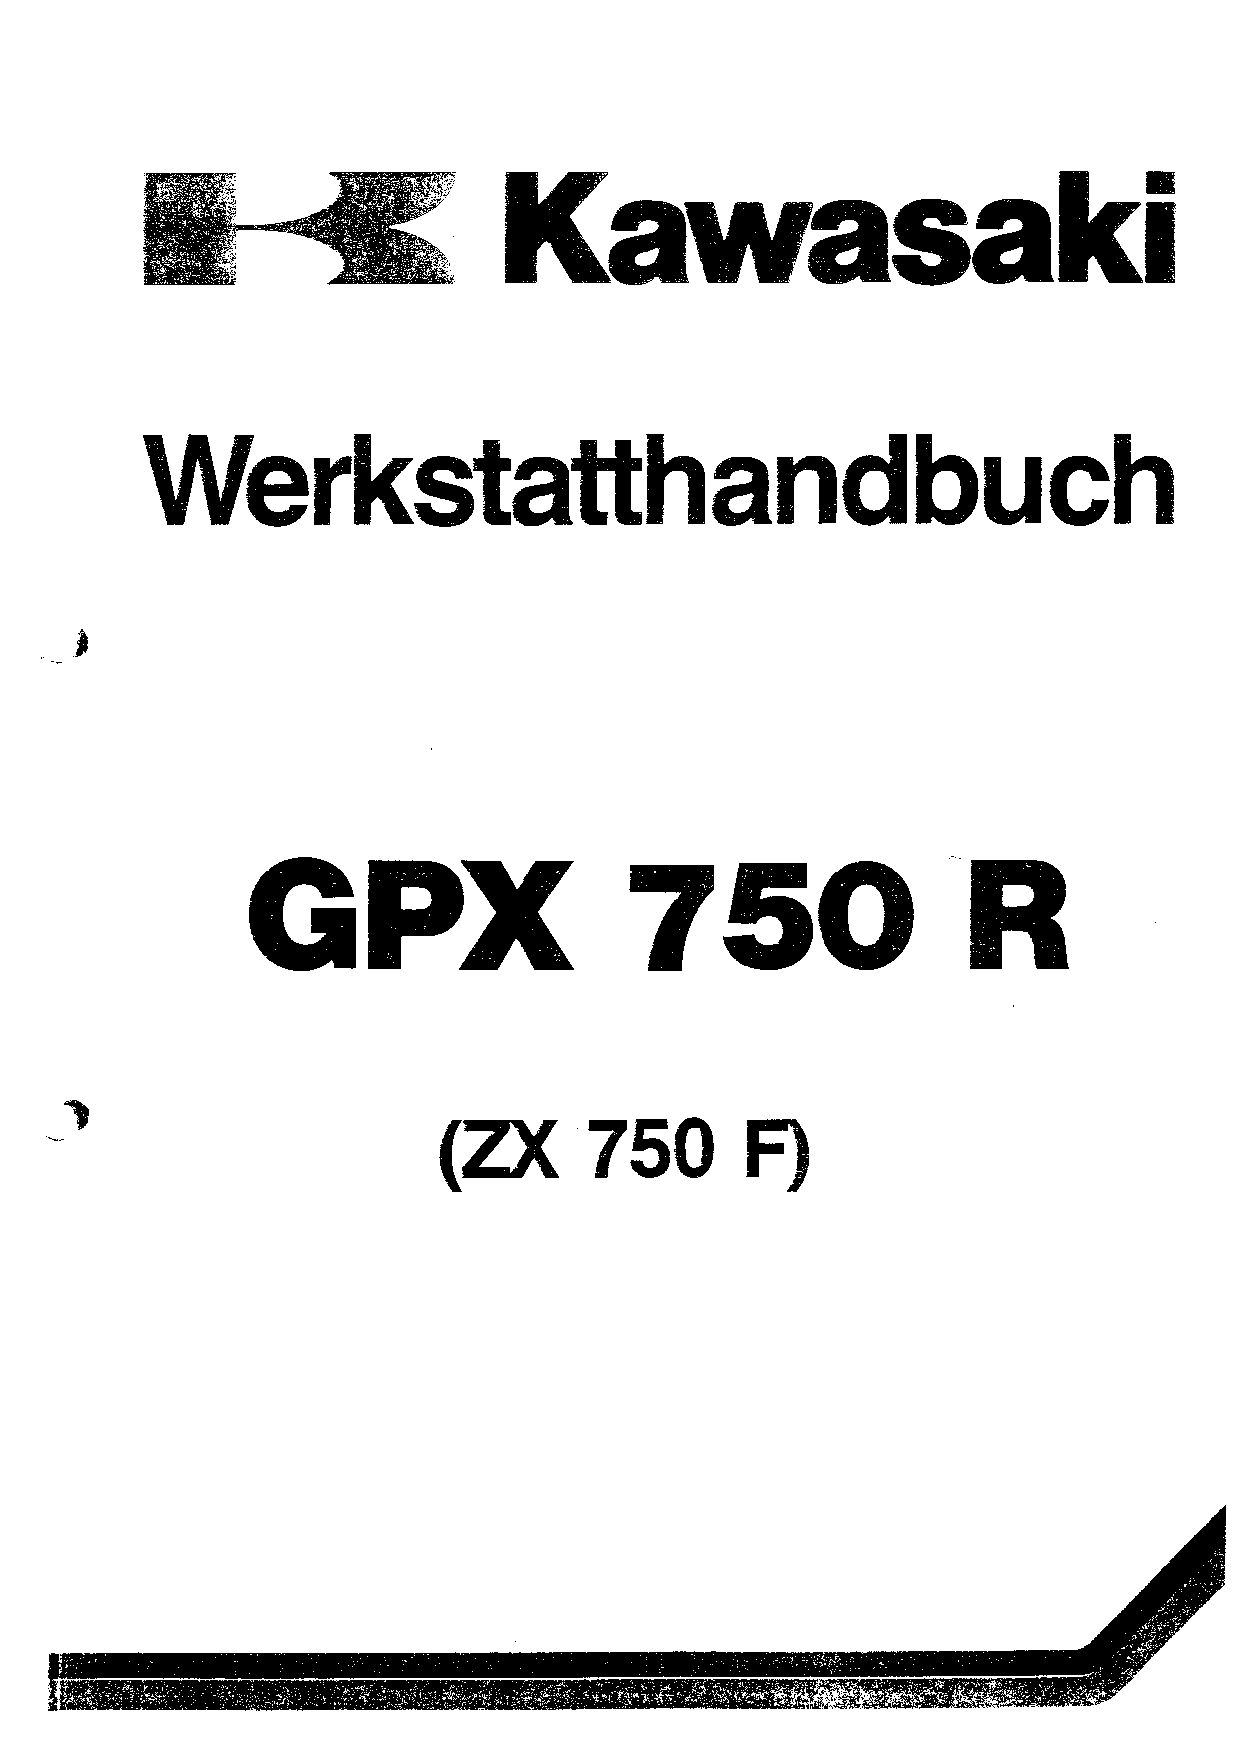 Kawasaki GPX 750 R ZX 750 F1 Service Manual PDF Download